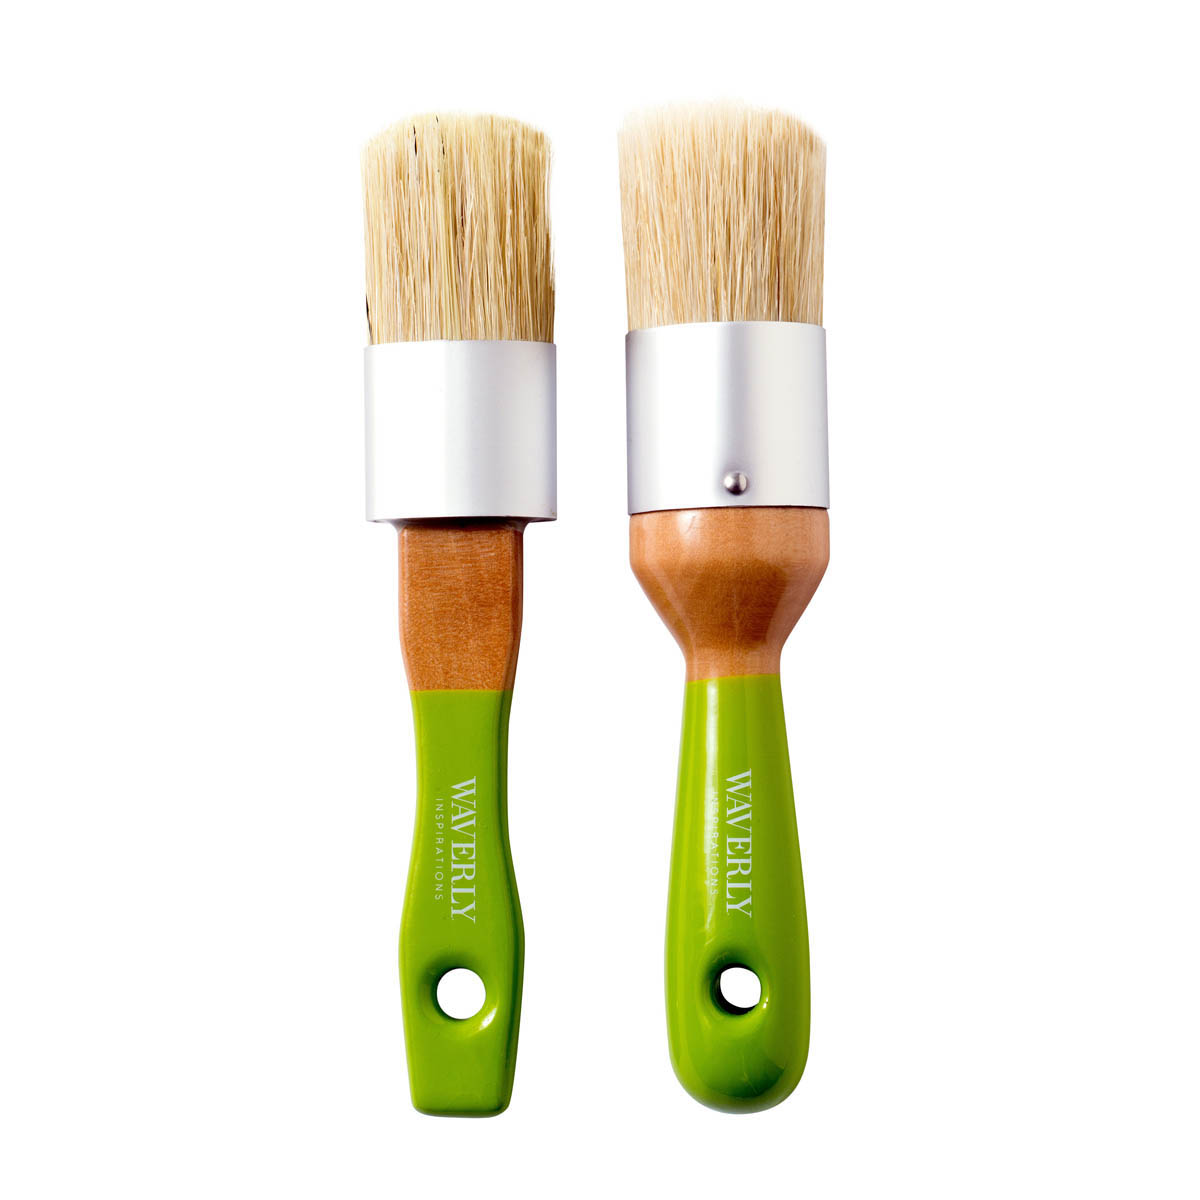 Waverly ® Inspirations Brushes - Chalk & Wax Combo